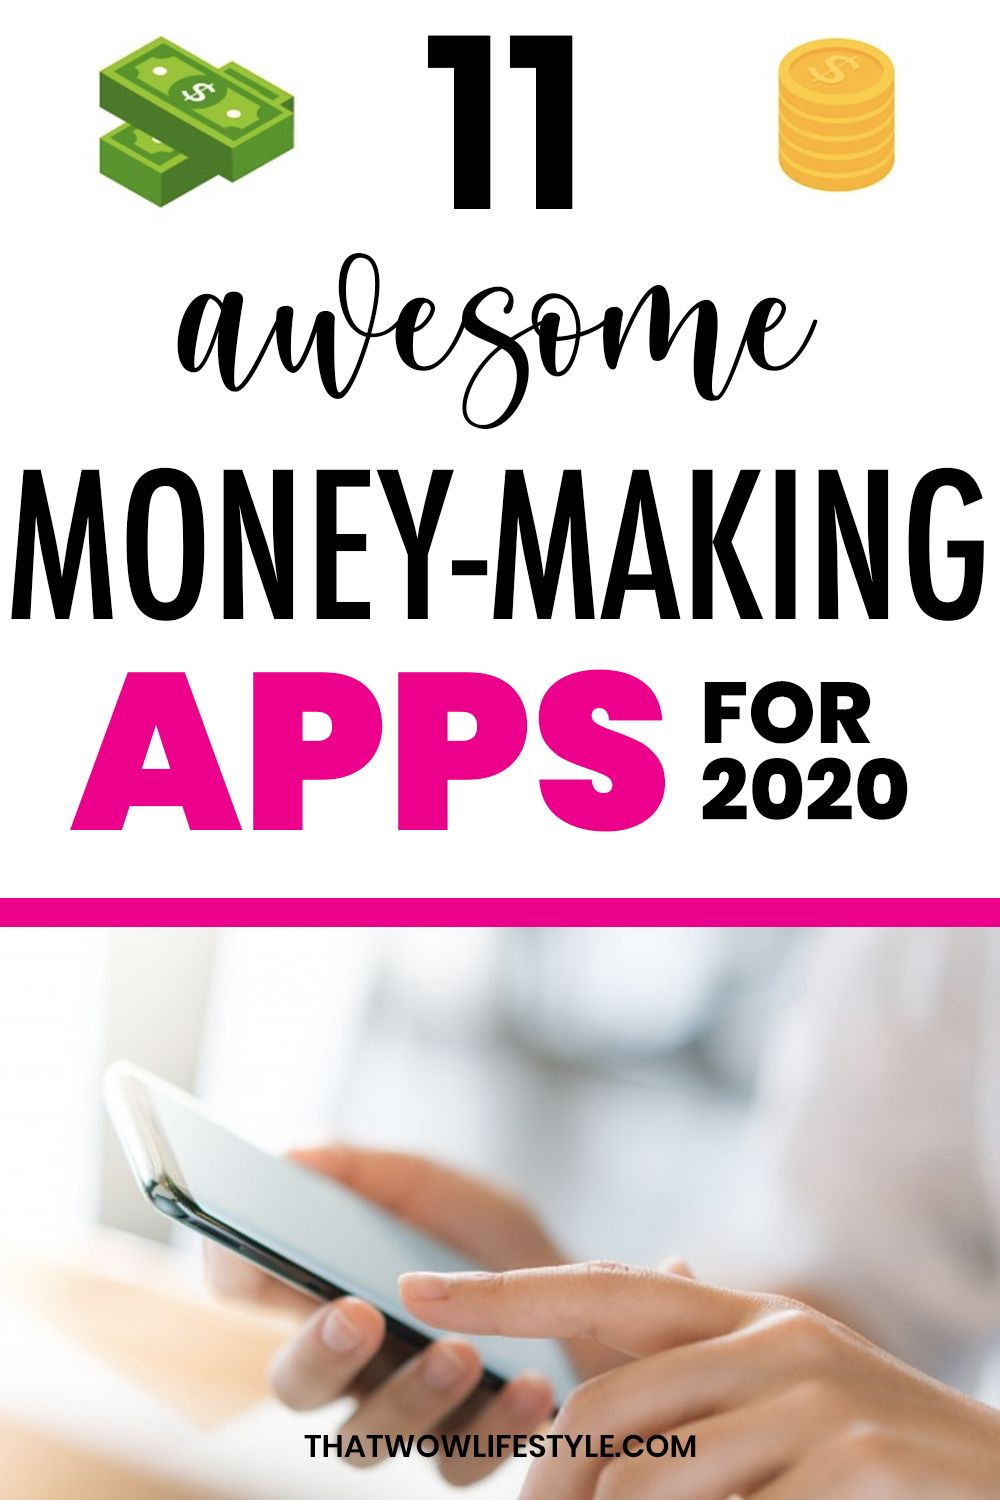 30 Apps That Make Real Money For Doing Almost Nothing With Images